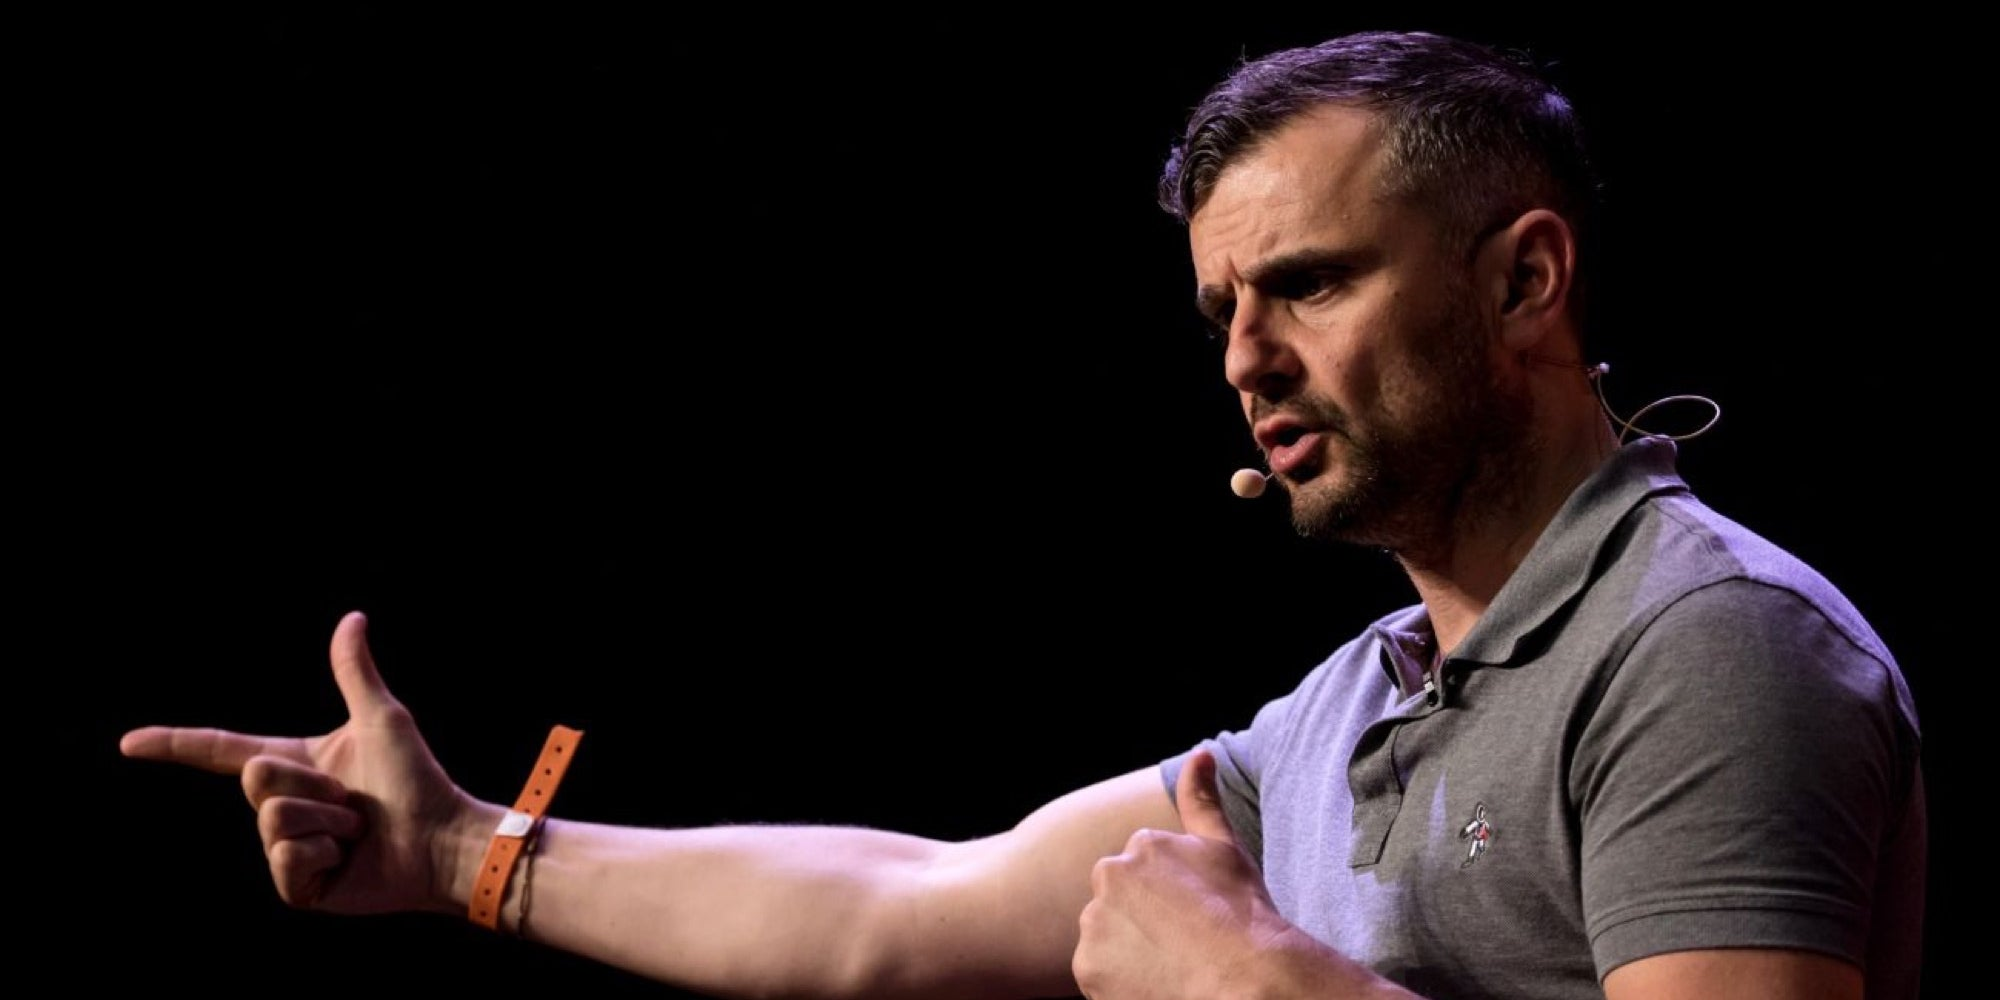 11 Inspirational Quotes from Gary Vaynerchuk to Help You Become the Best Version of Yourself